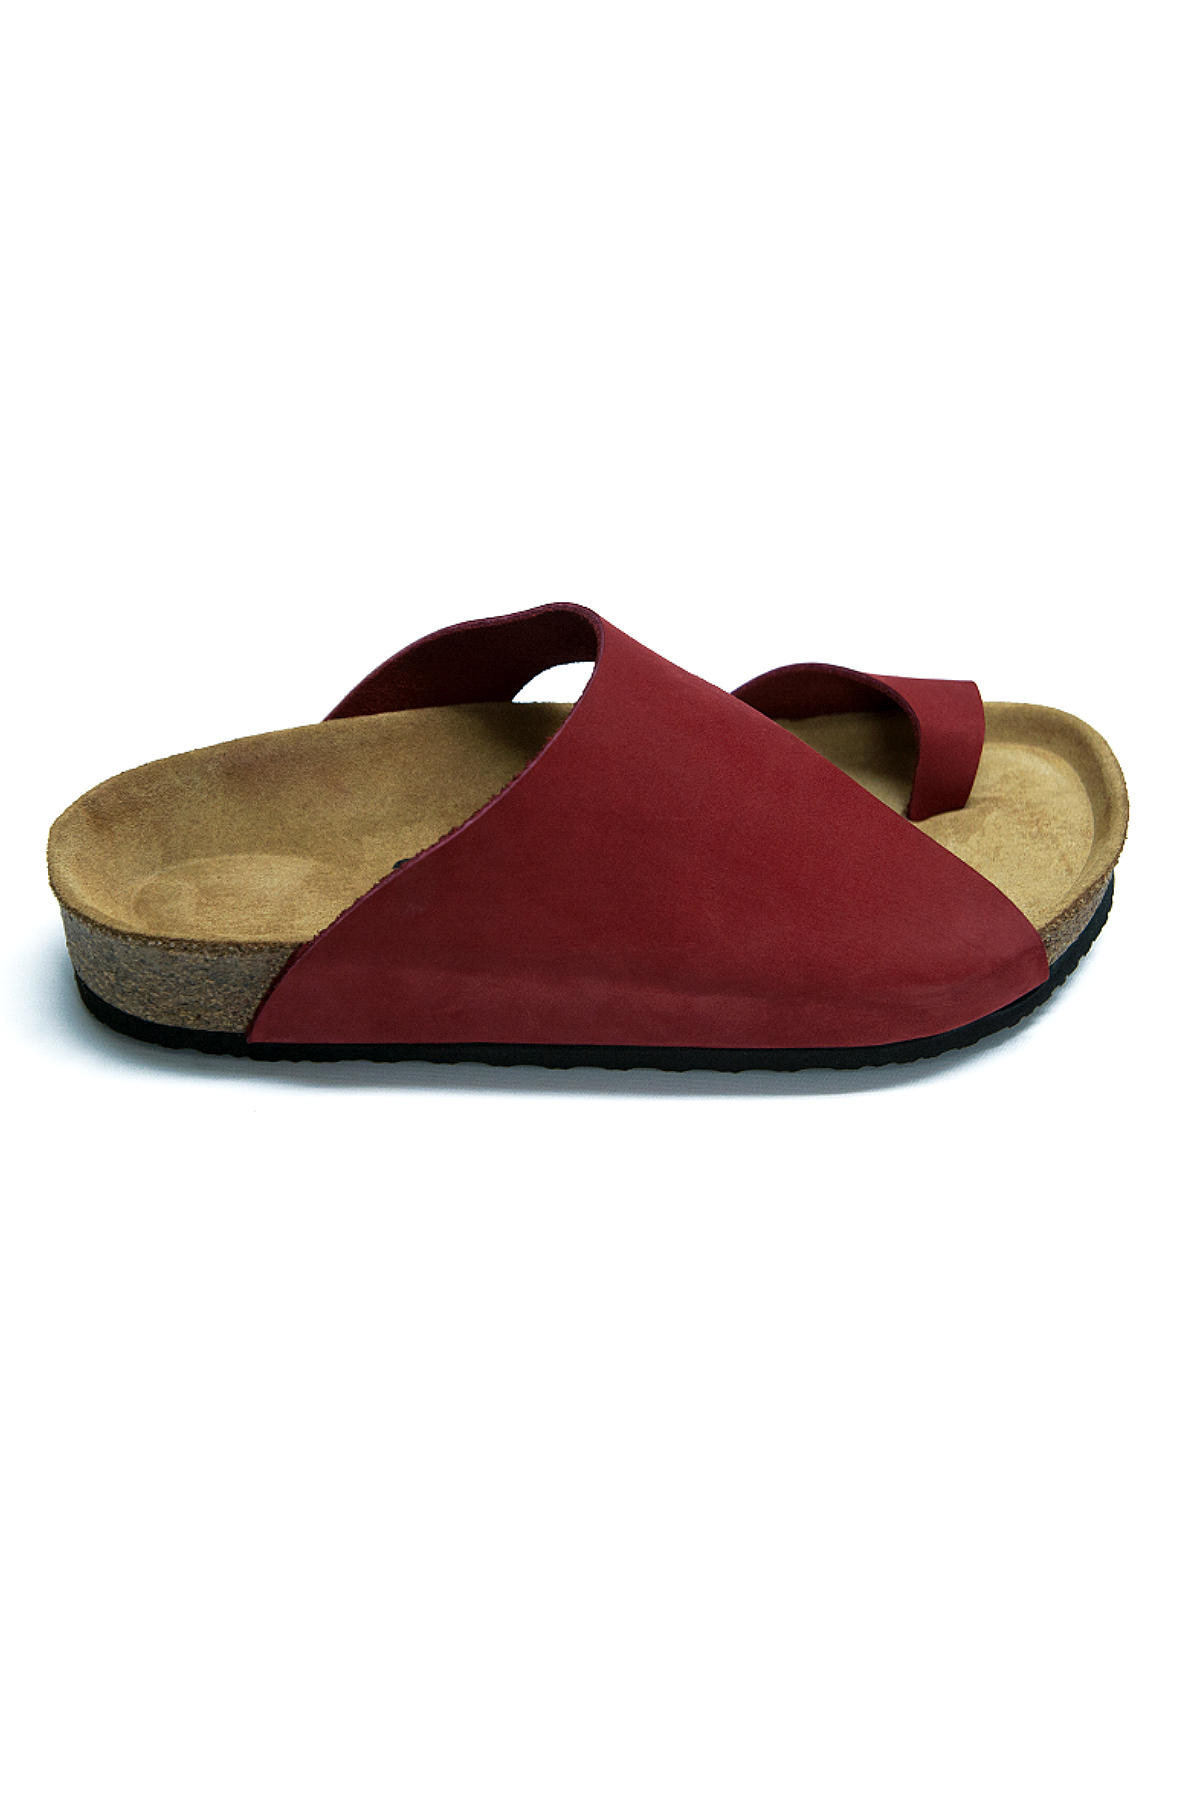 MAI Red Flip-Flops Anatomical Natural Cork Sole Real Leather Women Sandals